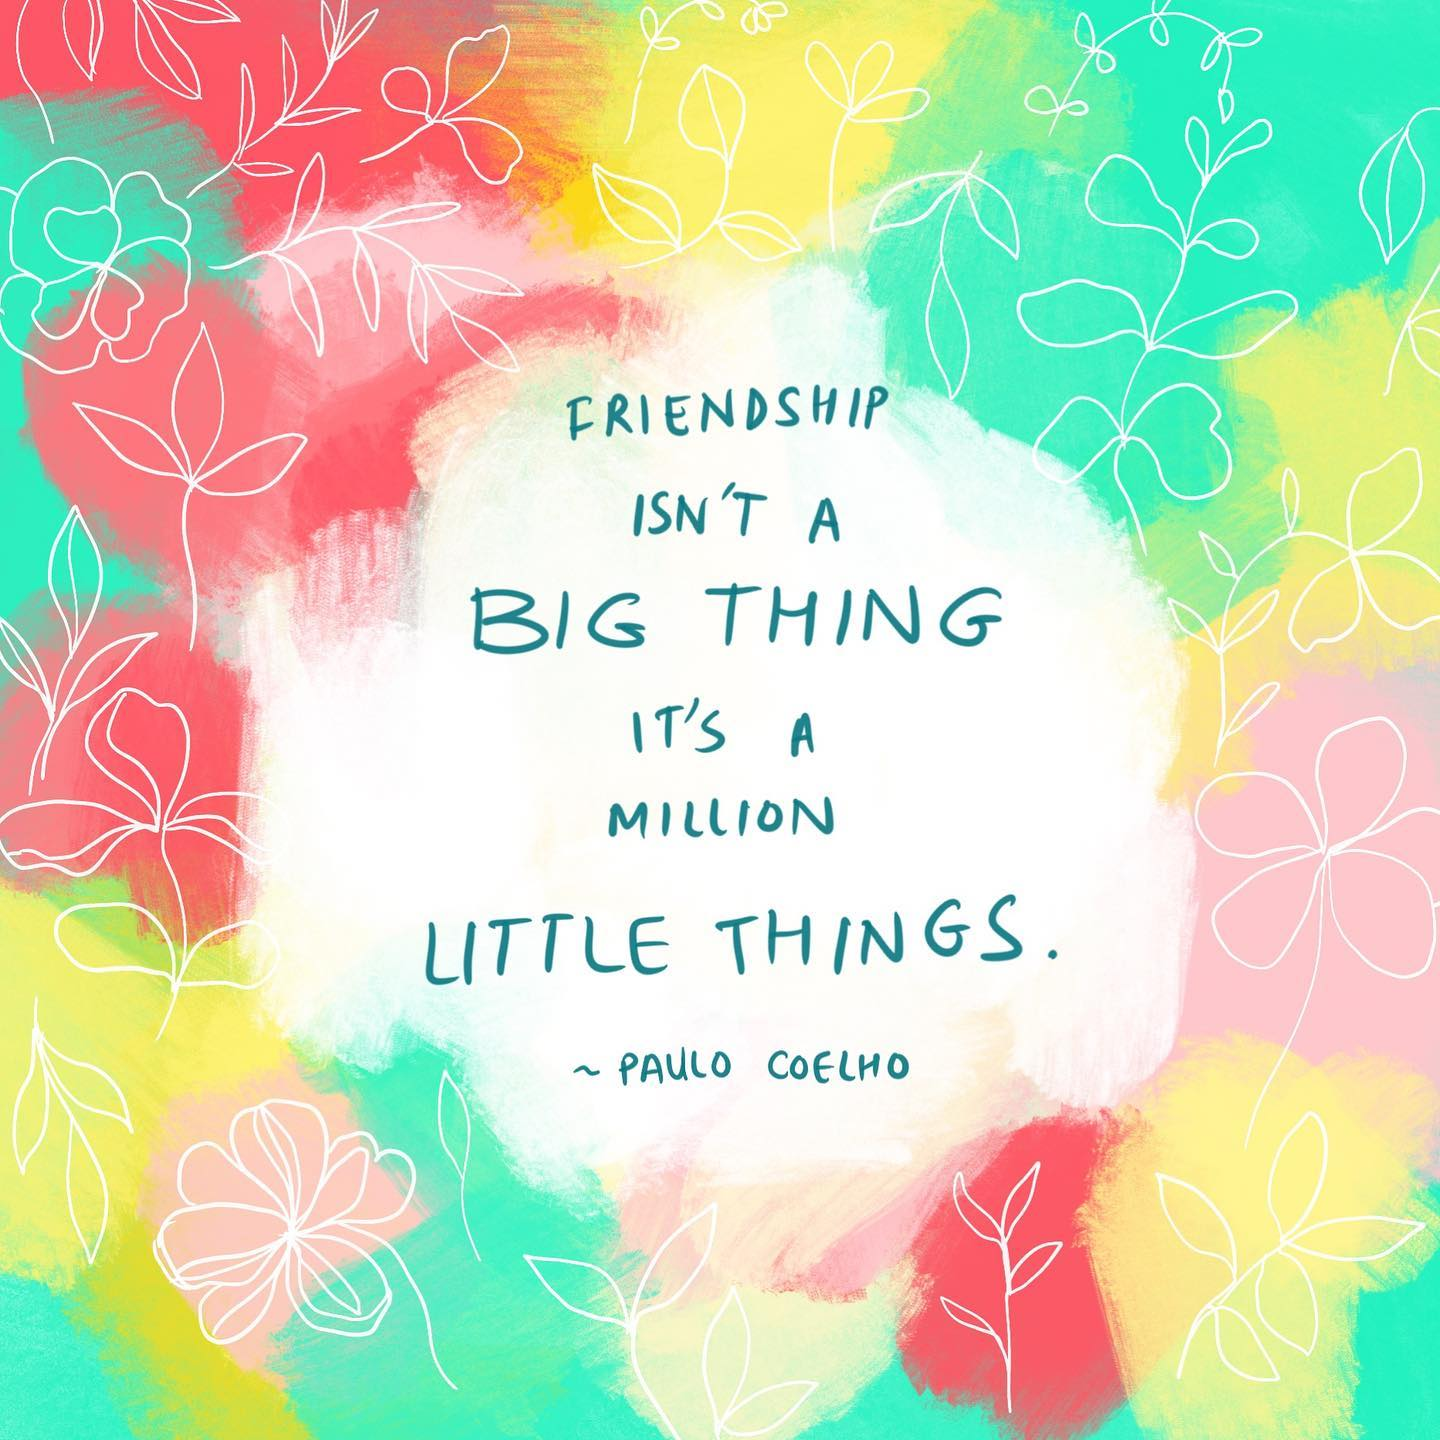 May the beautiful friendships last for ever! It's the national Best  Friend's day today!